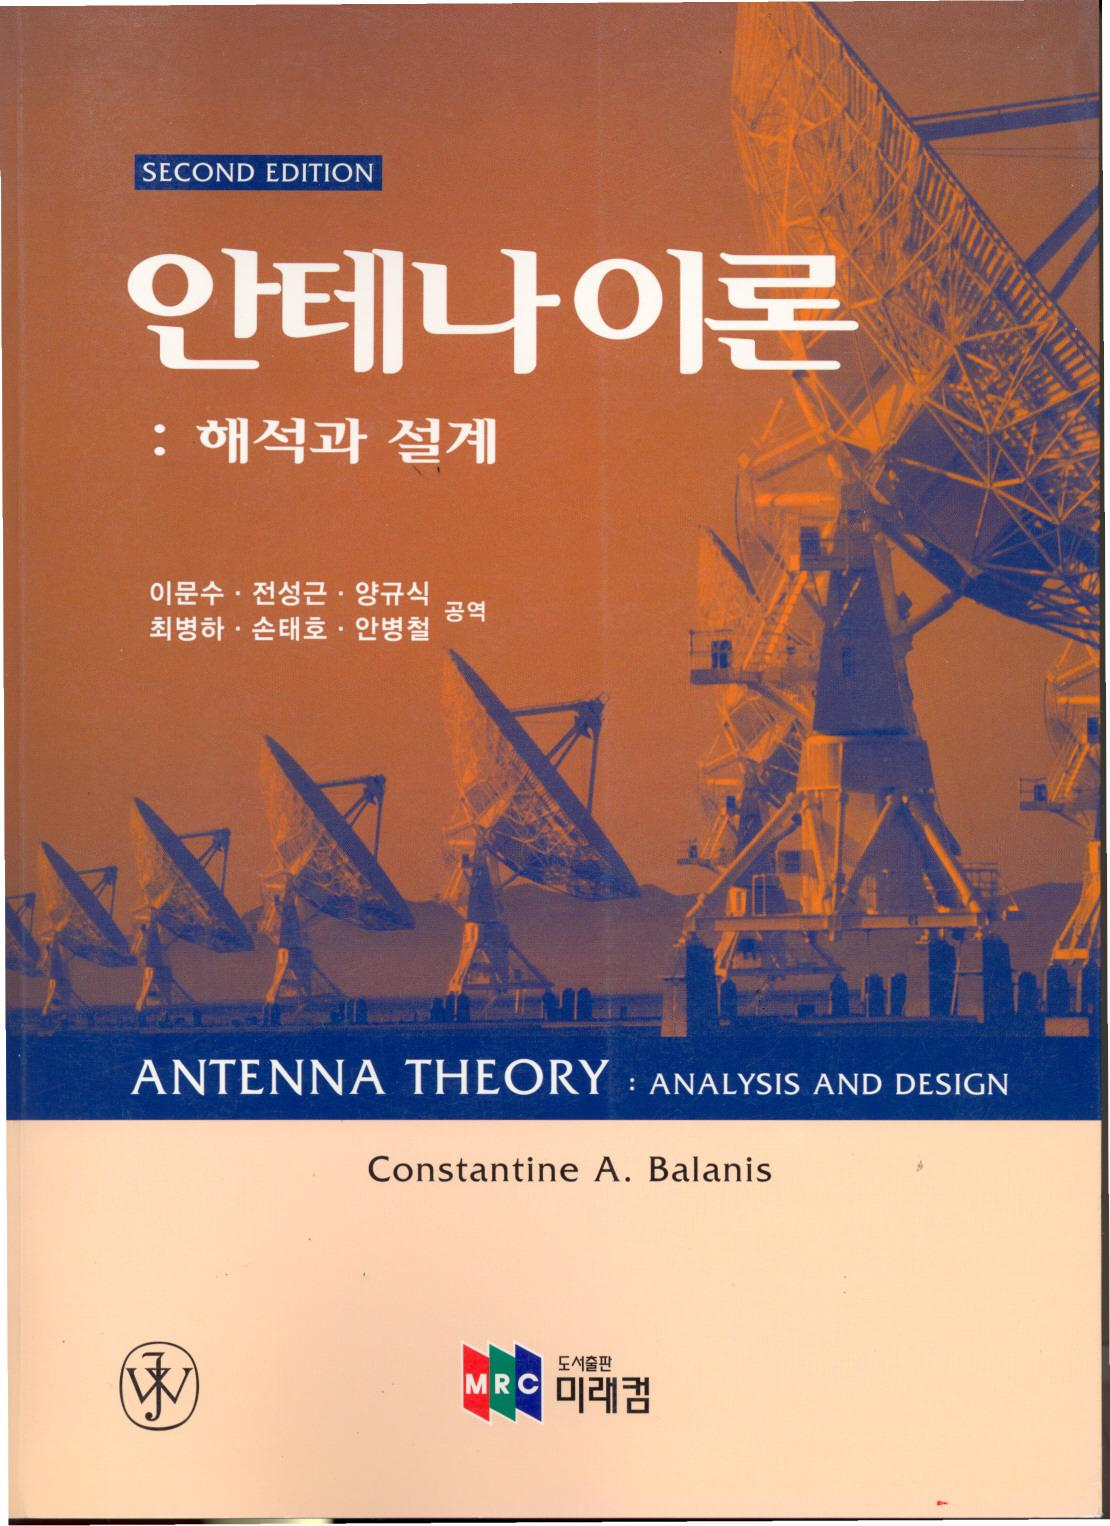 Antenna Theory: Analysis and Design, 2nd Edition Constantine A. Balanis